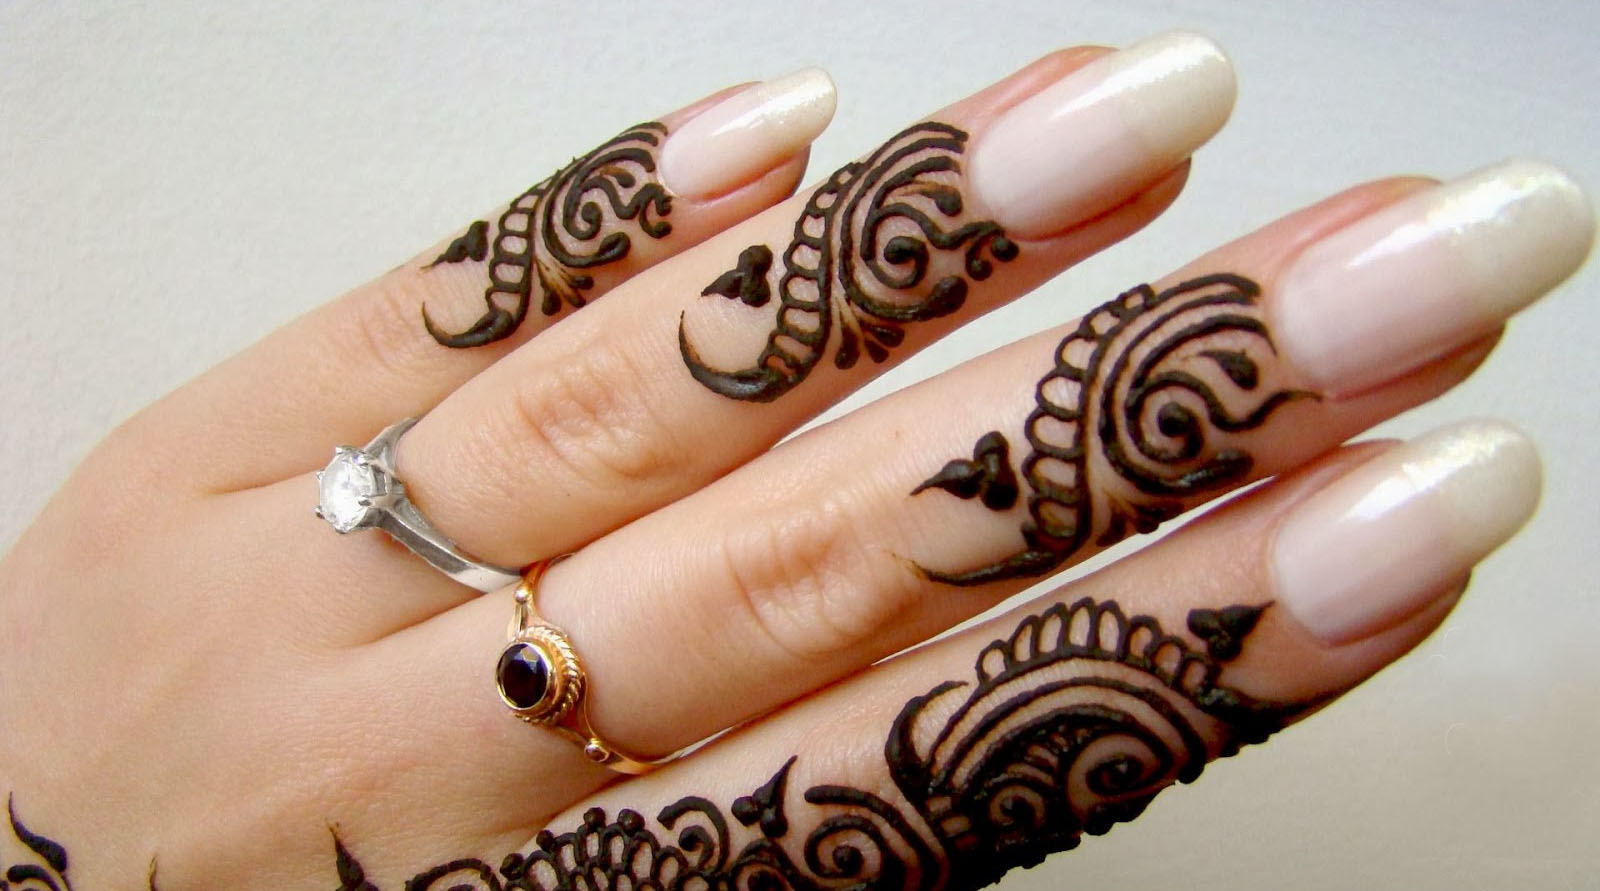 mehndi design wallpapers  pictures  images call of duty legos walmart call of duty logo iron on transfer